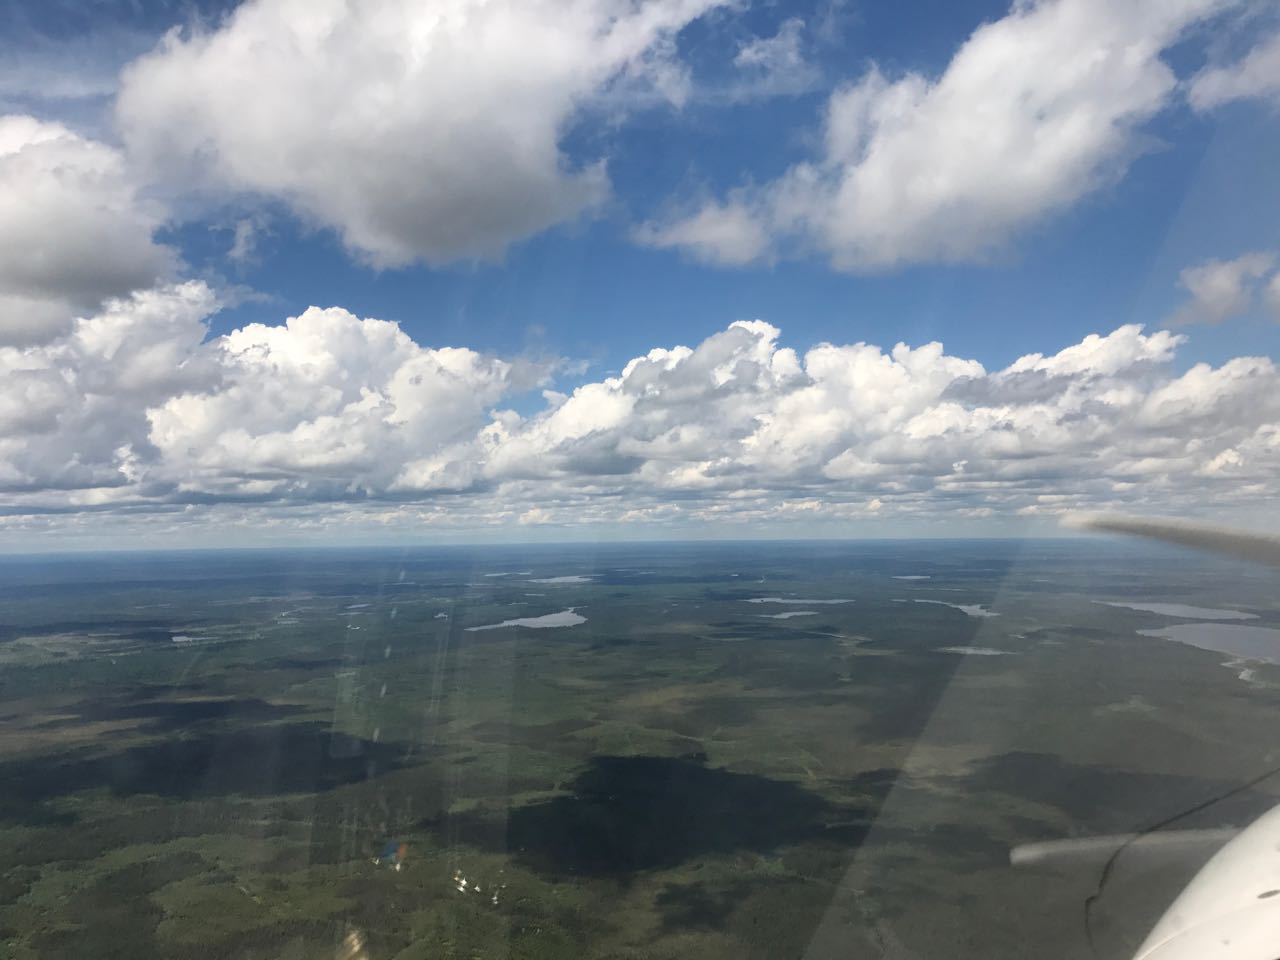 from-cochrane-to-moosonee-the-terrain-starts-changing_35600136135_o.jpg